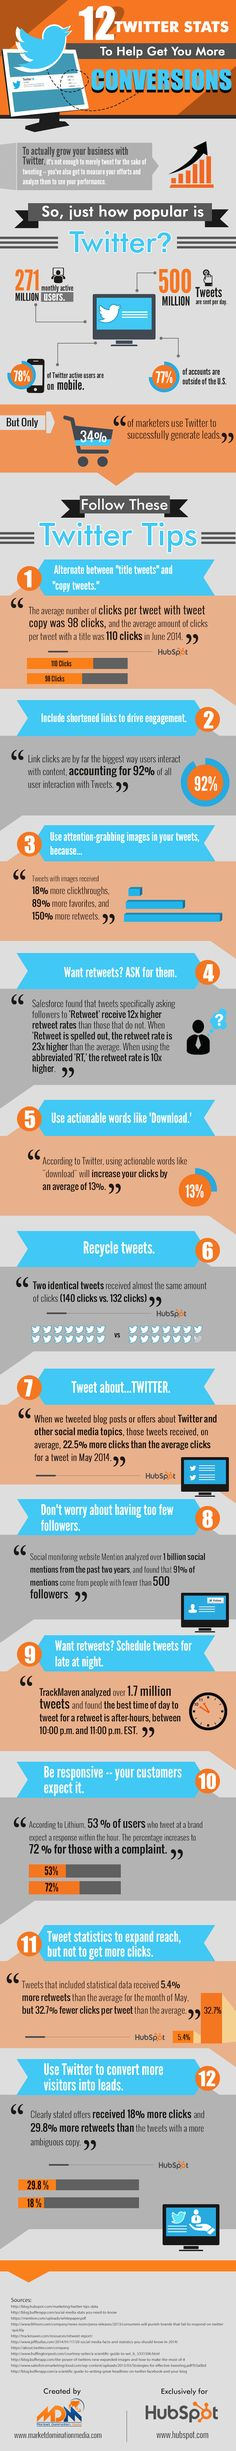 12 Data-Backed Tips to Increase Your Conversion Rate on #Twitter - #Infographic #socialmedia tips